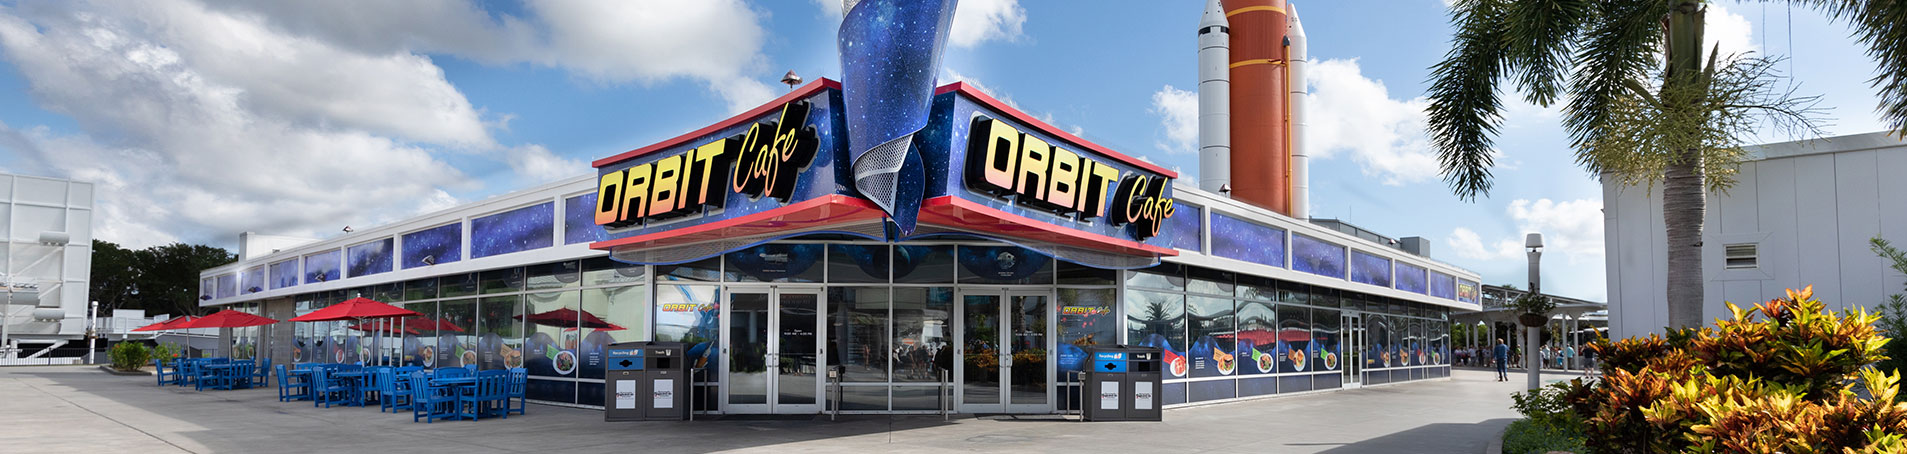 Orbit Cafe at Kennedy Space Center Visitor Complex